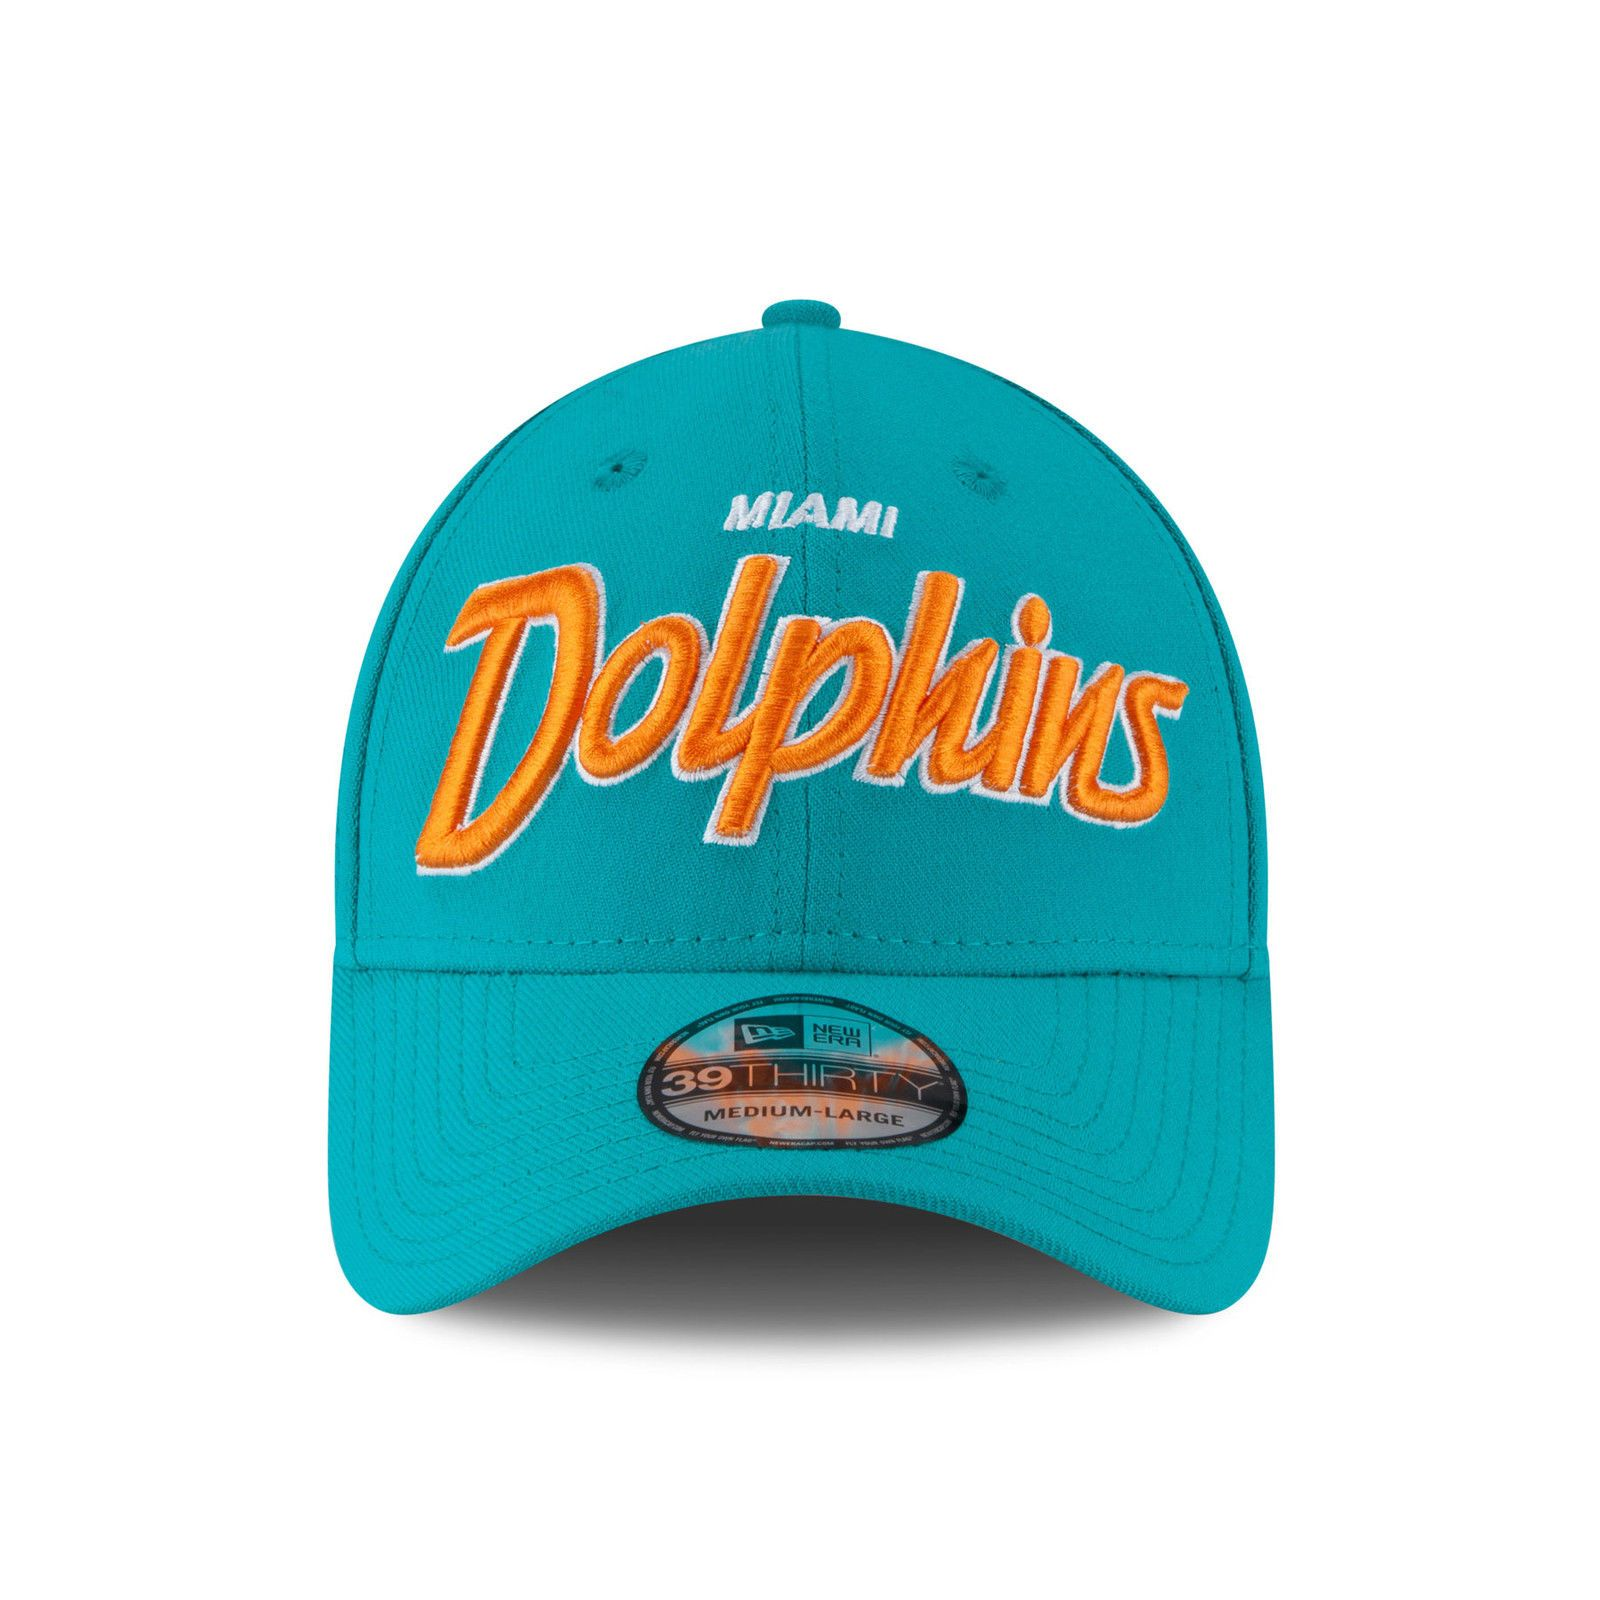 New Era Miami Dolphins NFL Fan Apparel   Souvenirs  fa5e18cd2